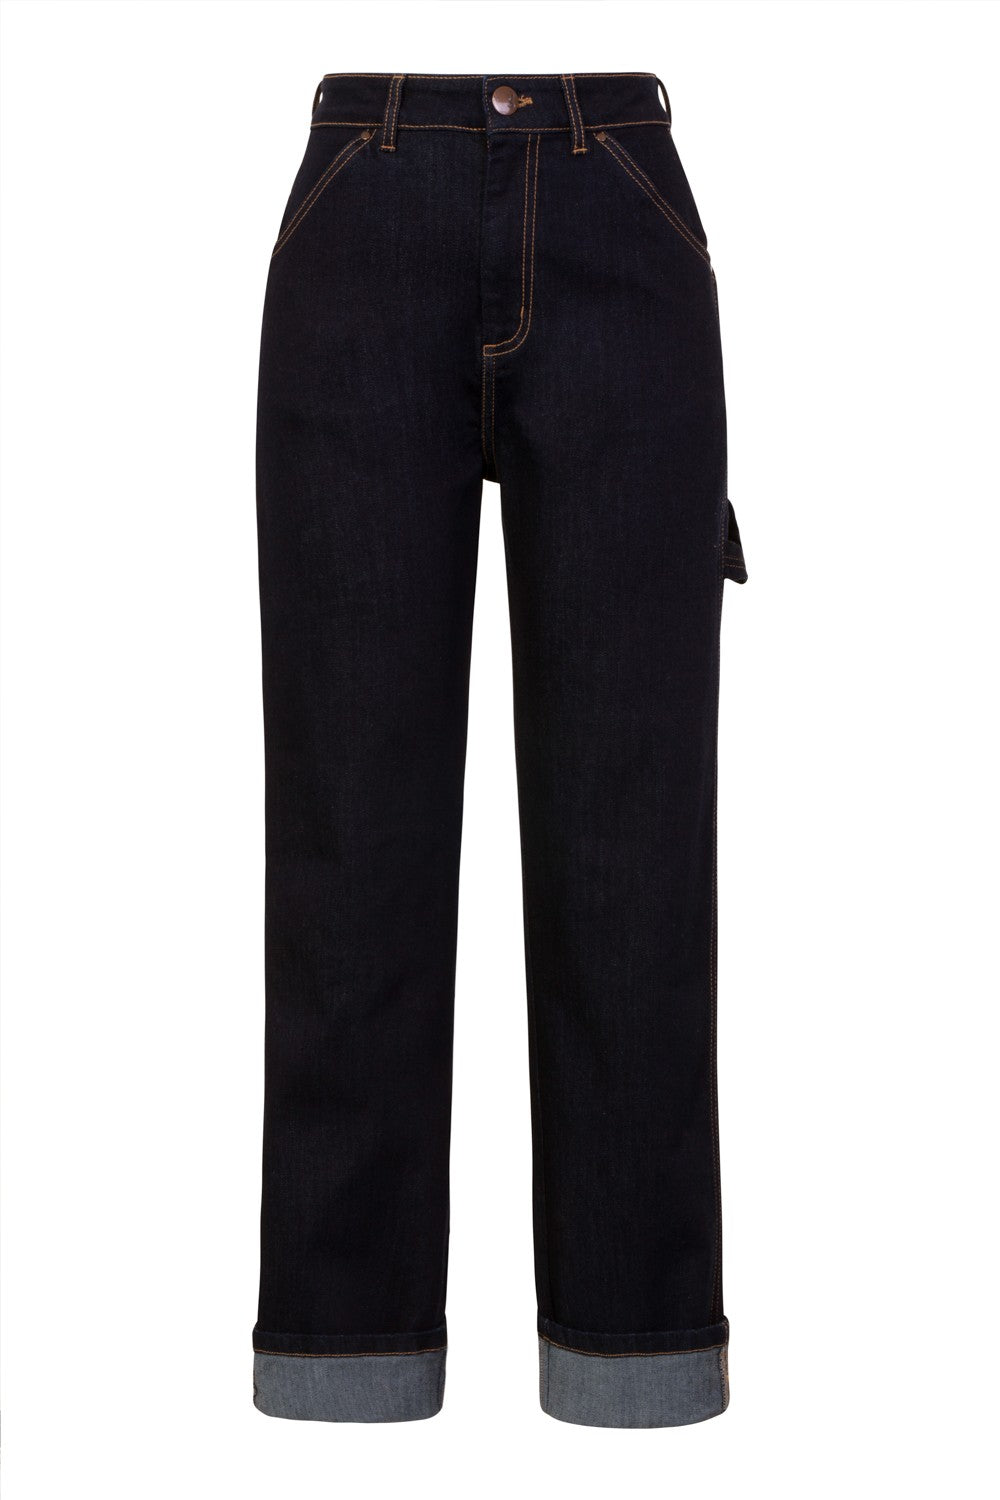 Hell Bunny Carpenter Denim Trousers